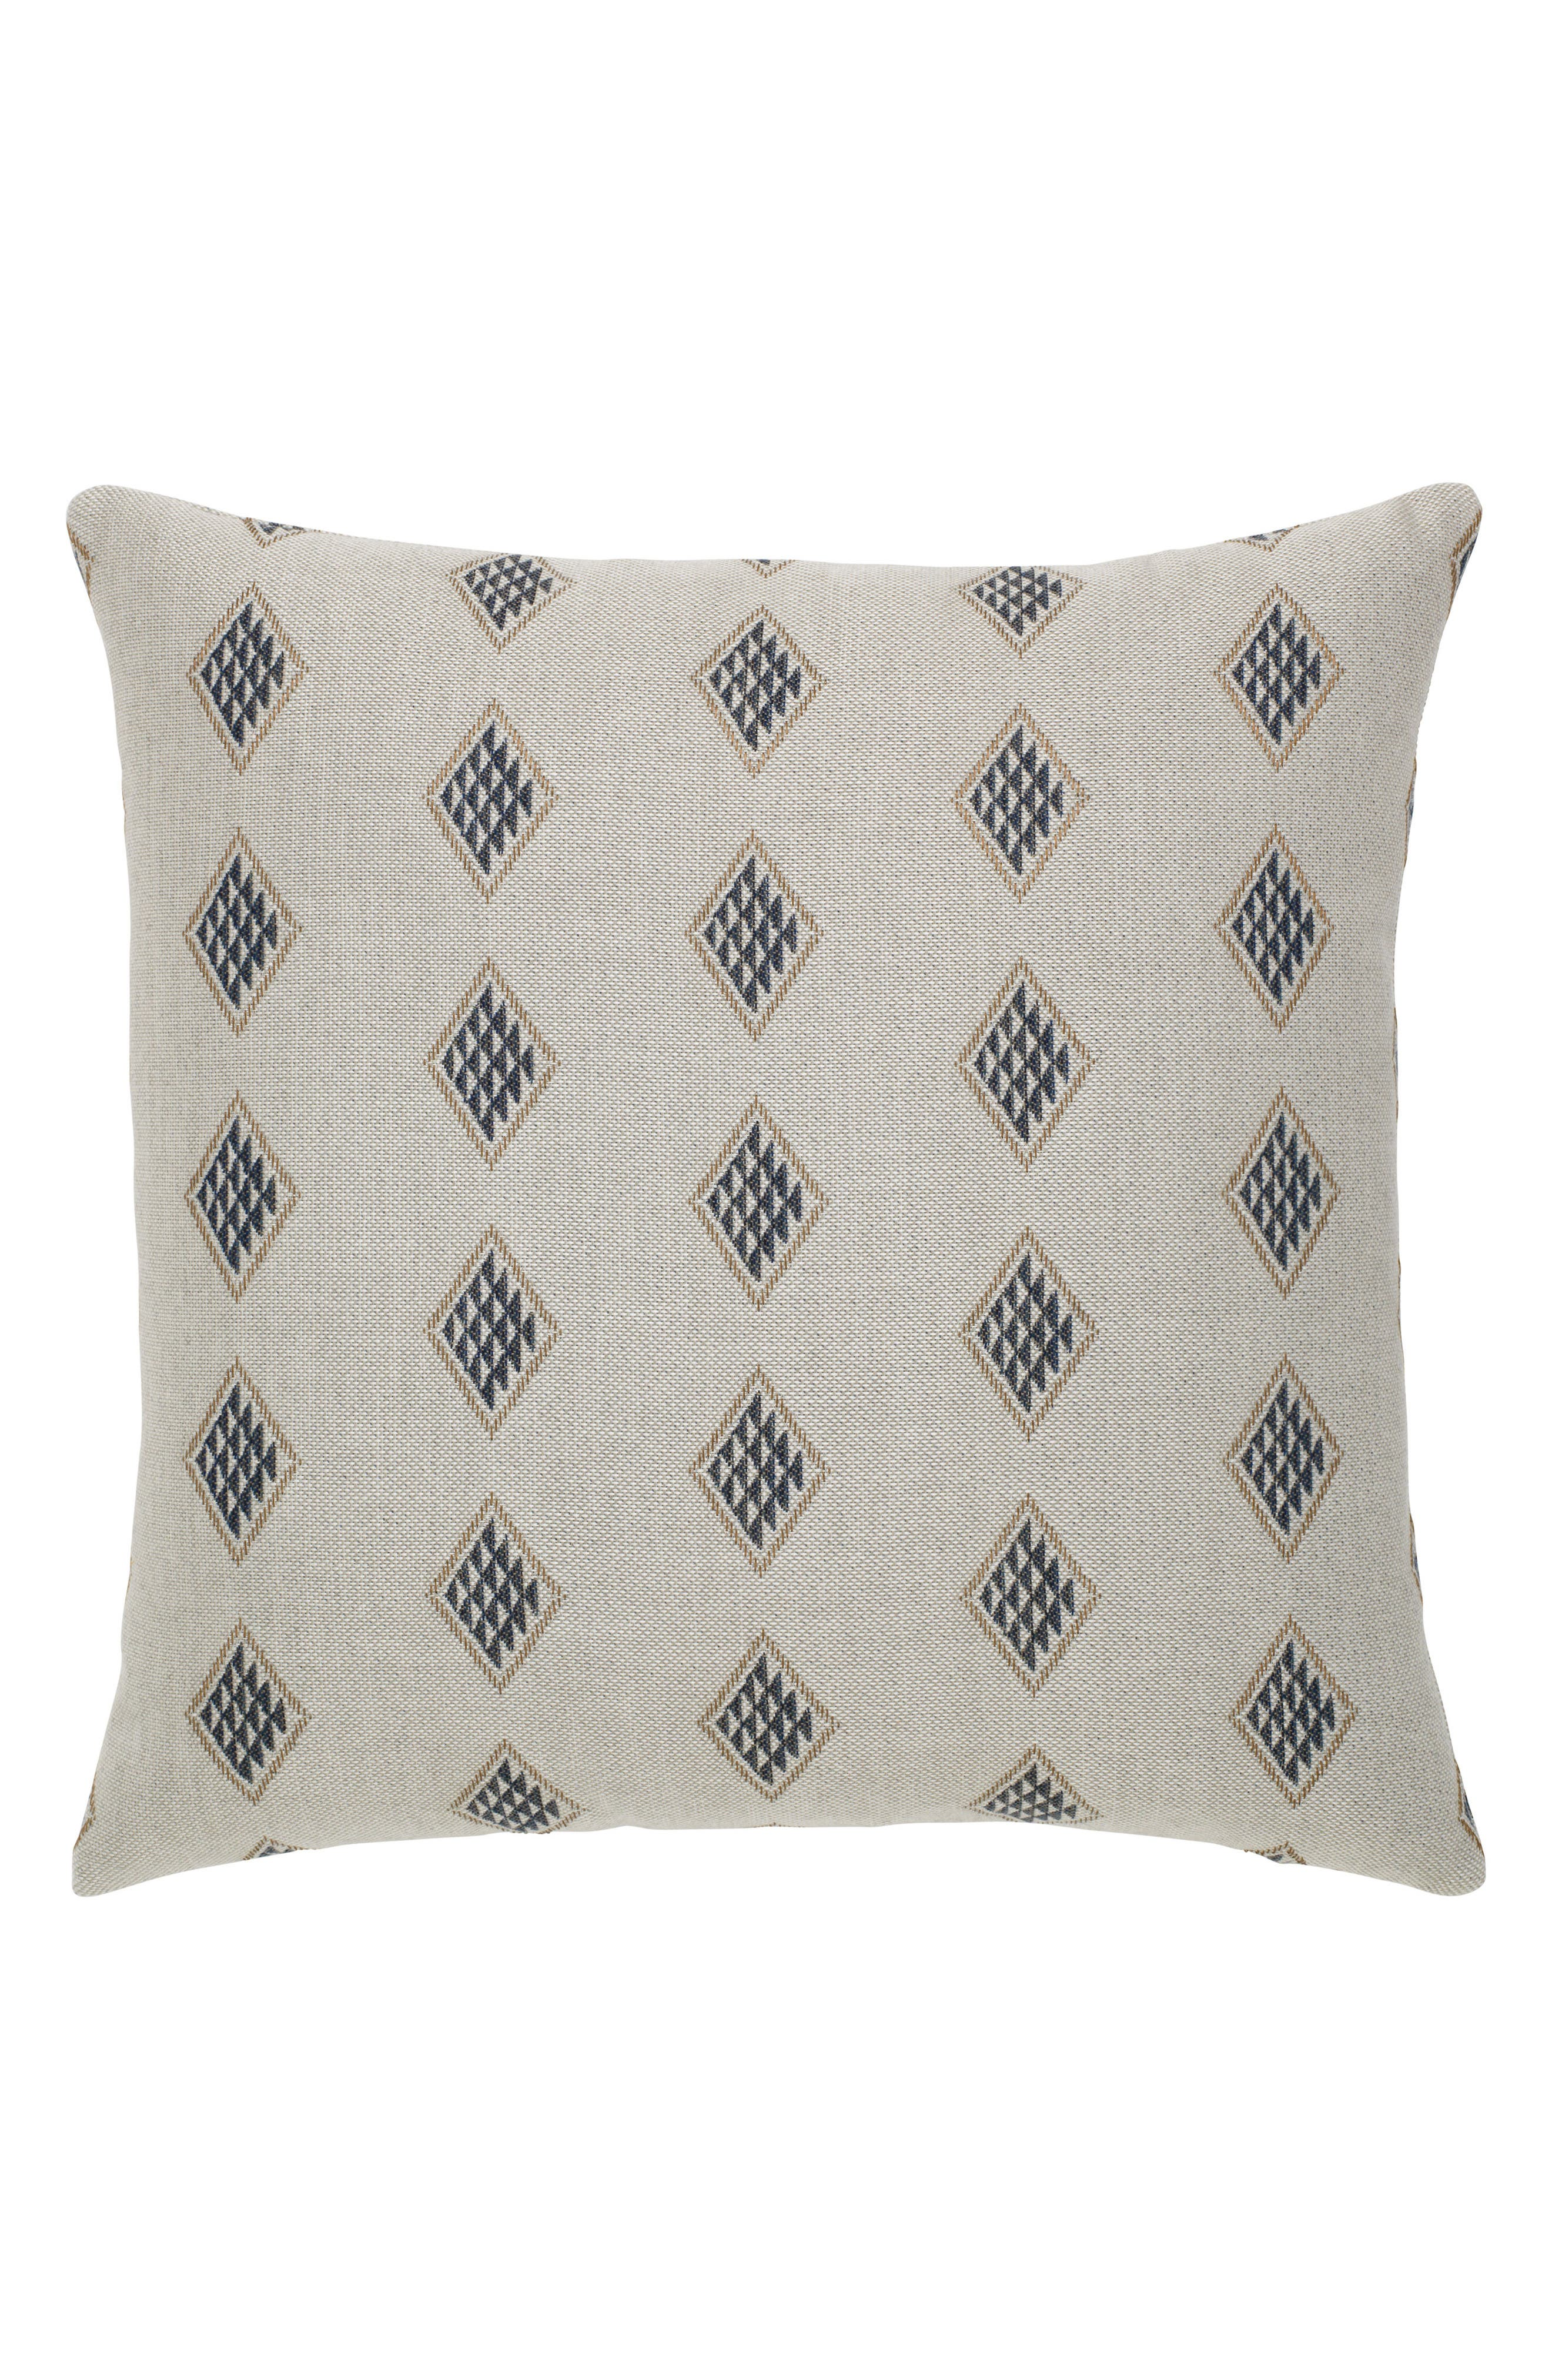 Passage Indoor/Outdoor Accent Pillow,                             Main thumbnail 1, color,                             Ivory